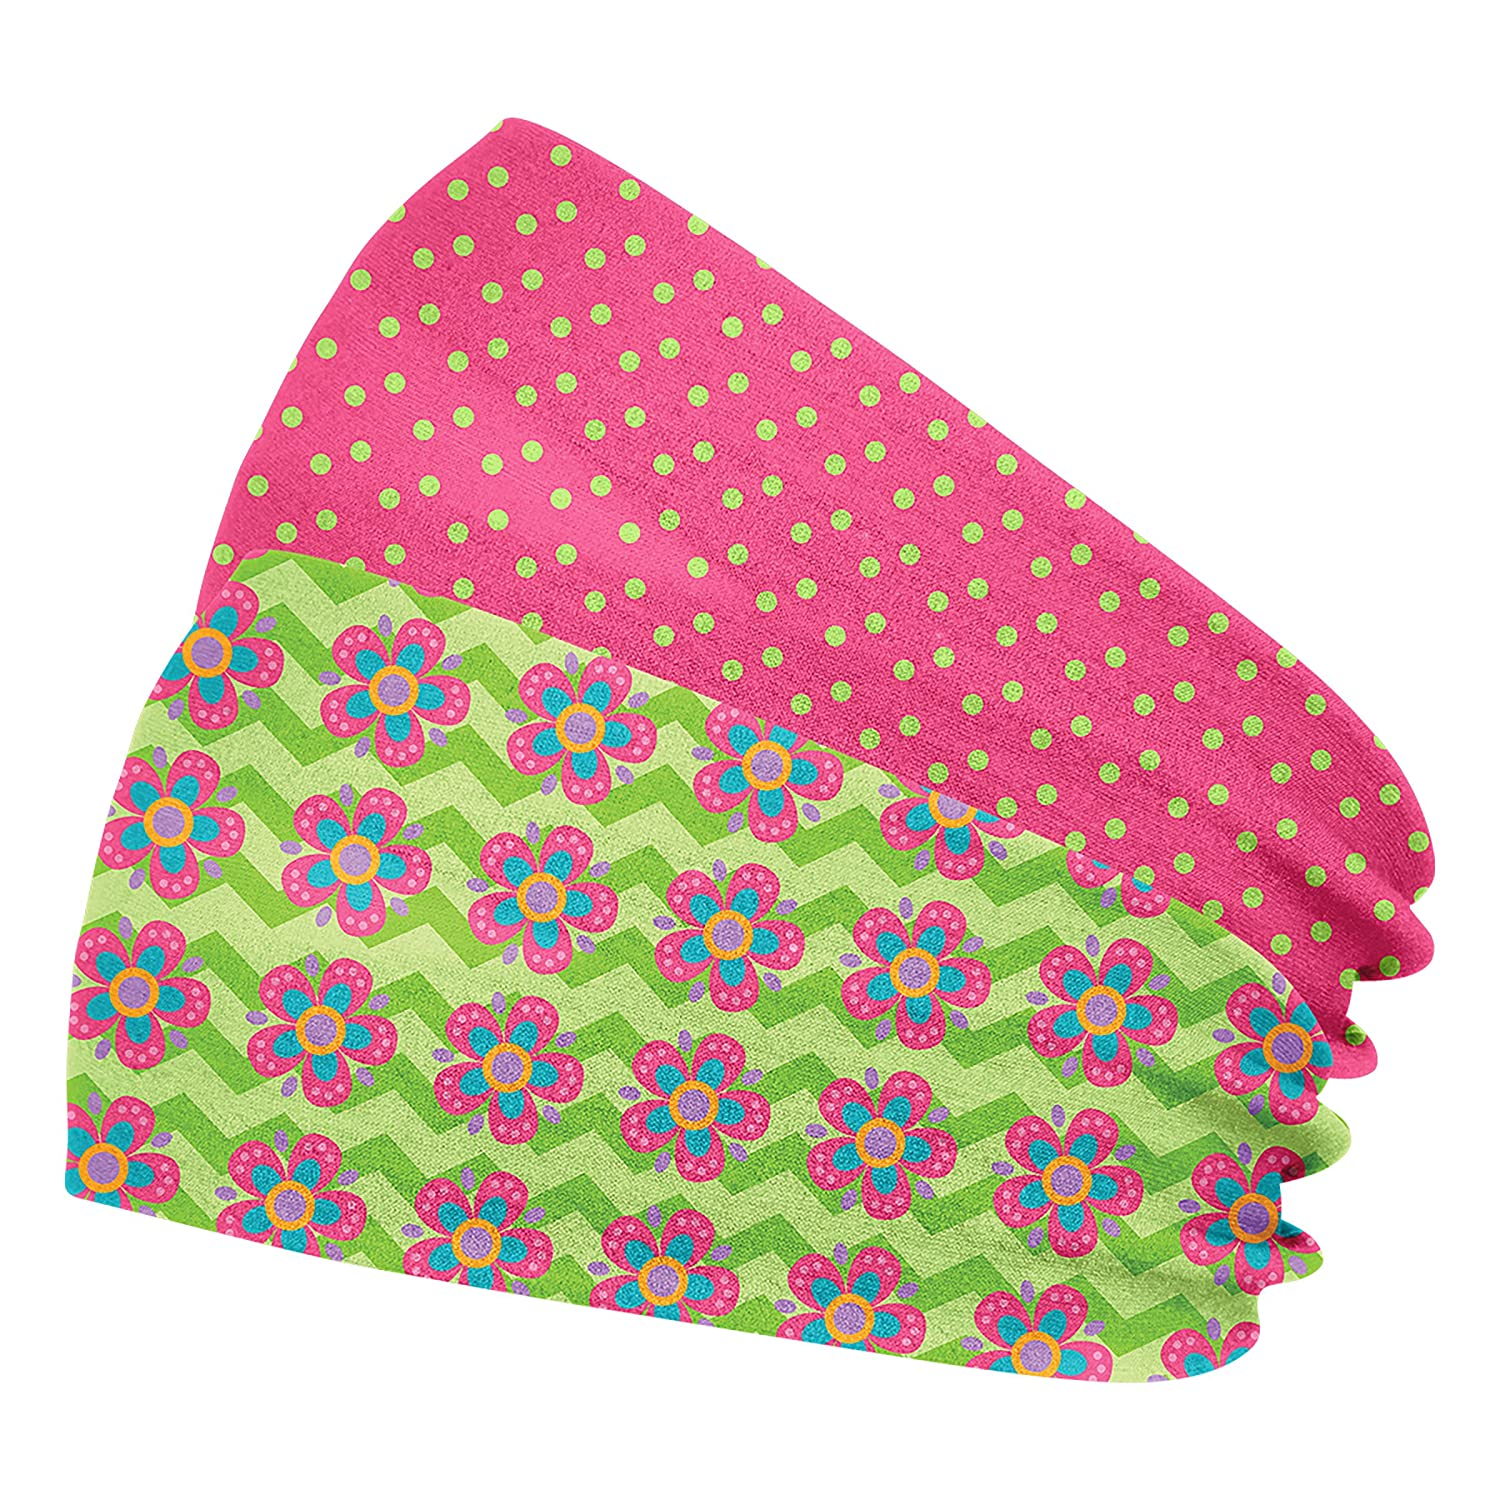 Amazon.com: Stephen Joseph Headbands De Las Niñas, talla ...